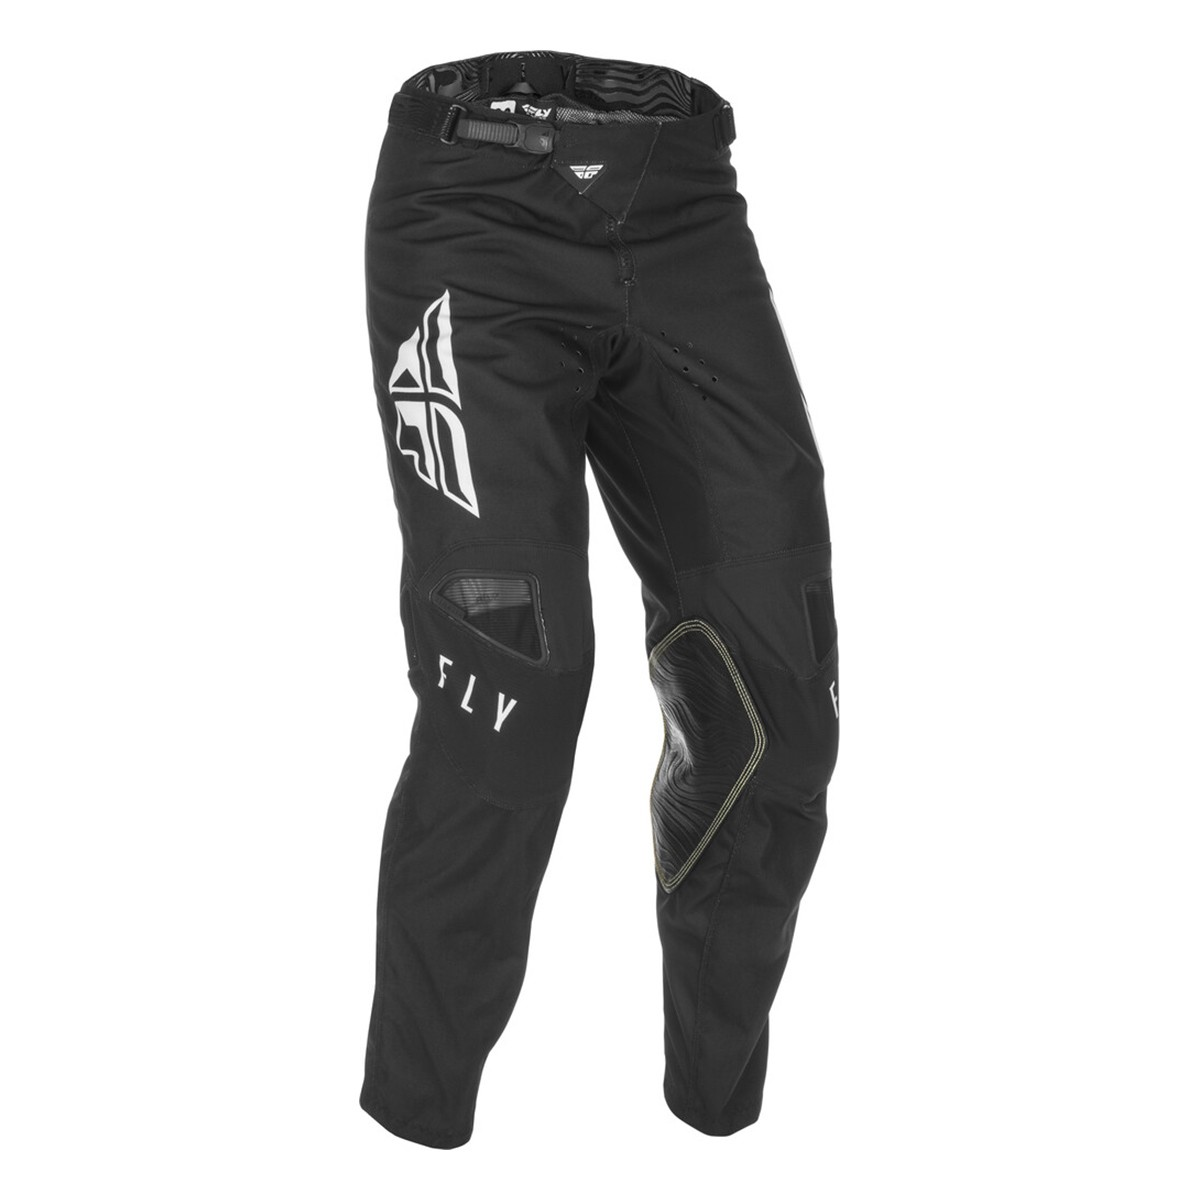 FLY KINETIC K121 2021 PANTS